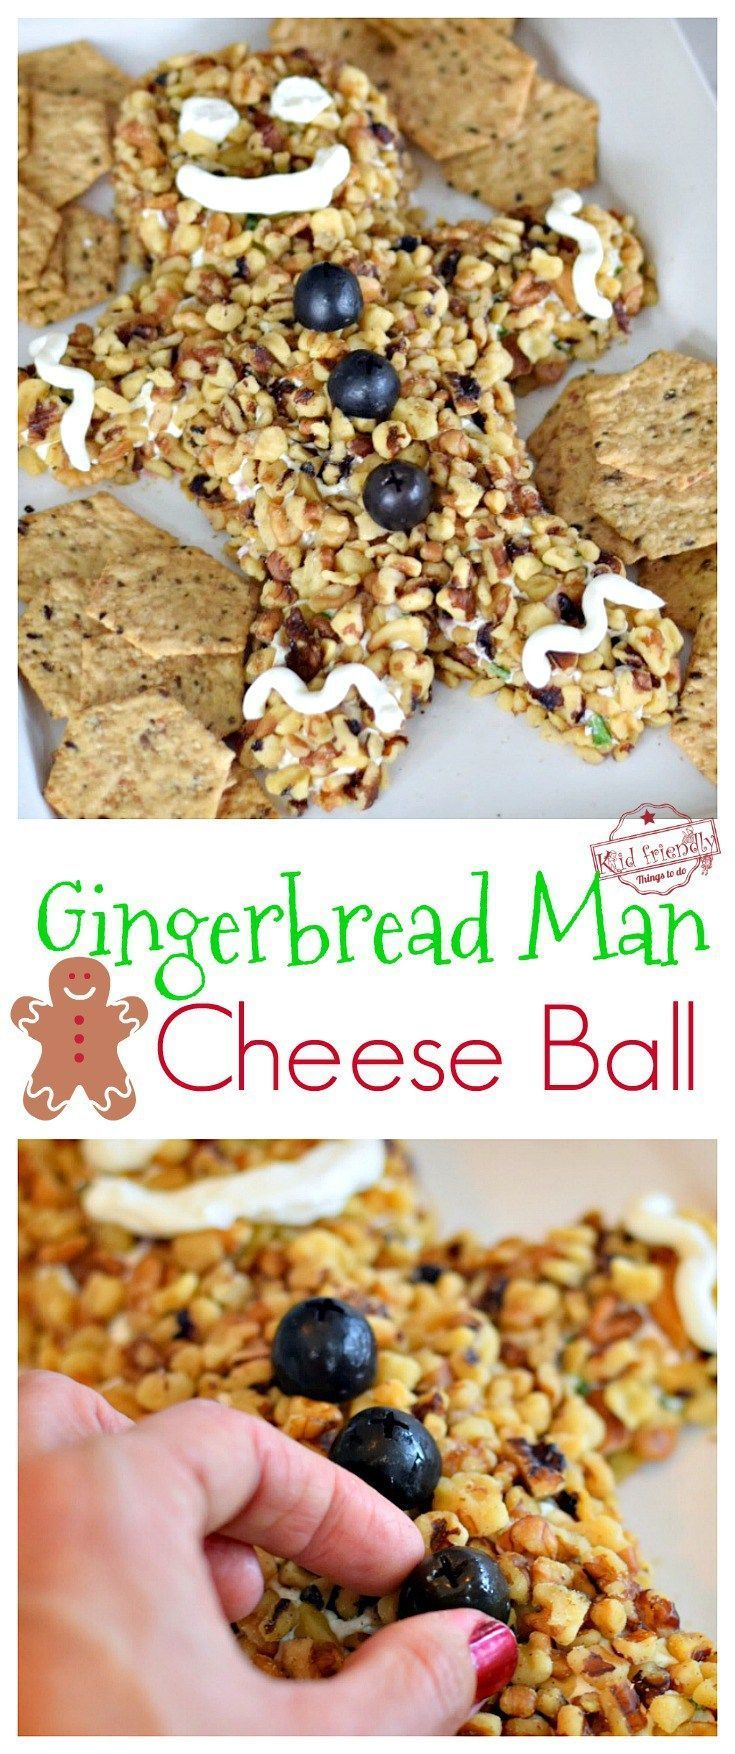 Fun and Easy Gingerbread Christmas Cheese Ball Recipe and Tutorial - Simple to make. Perfect holiday cheese ball with green onions and ham for your holiday parties! www.kidfriendlythingstodo.com